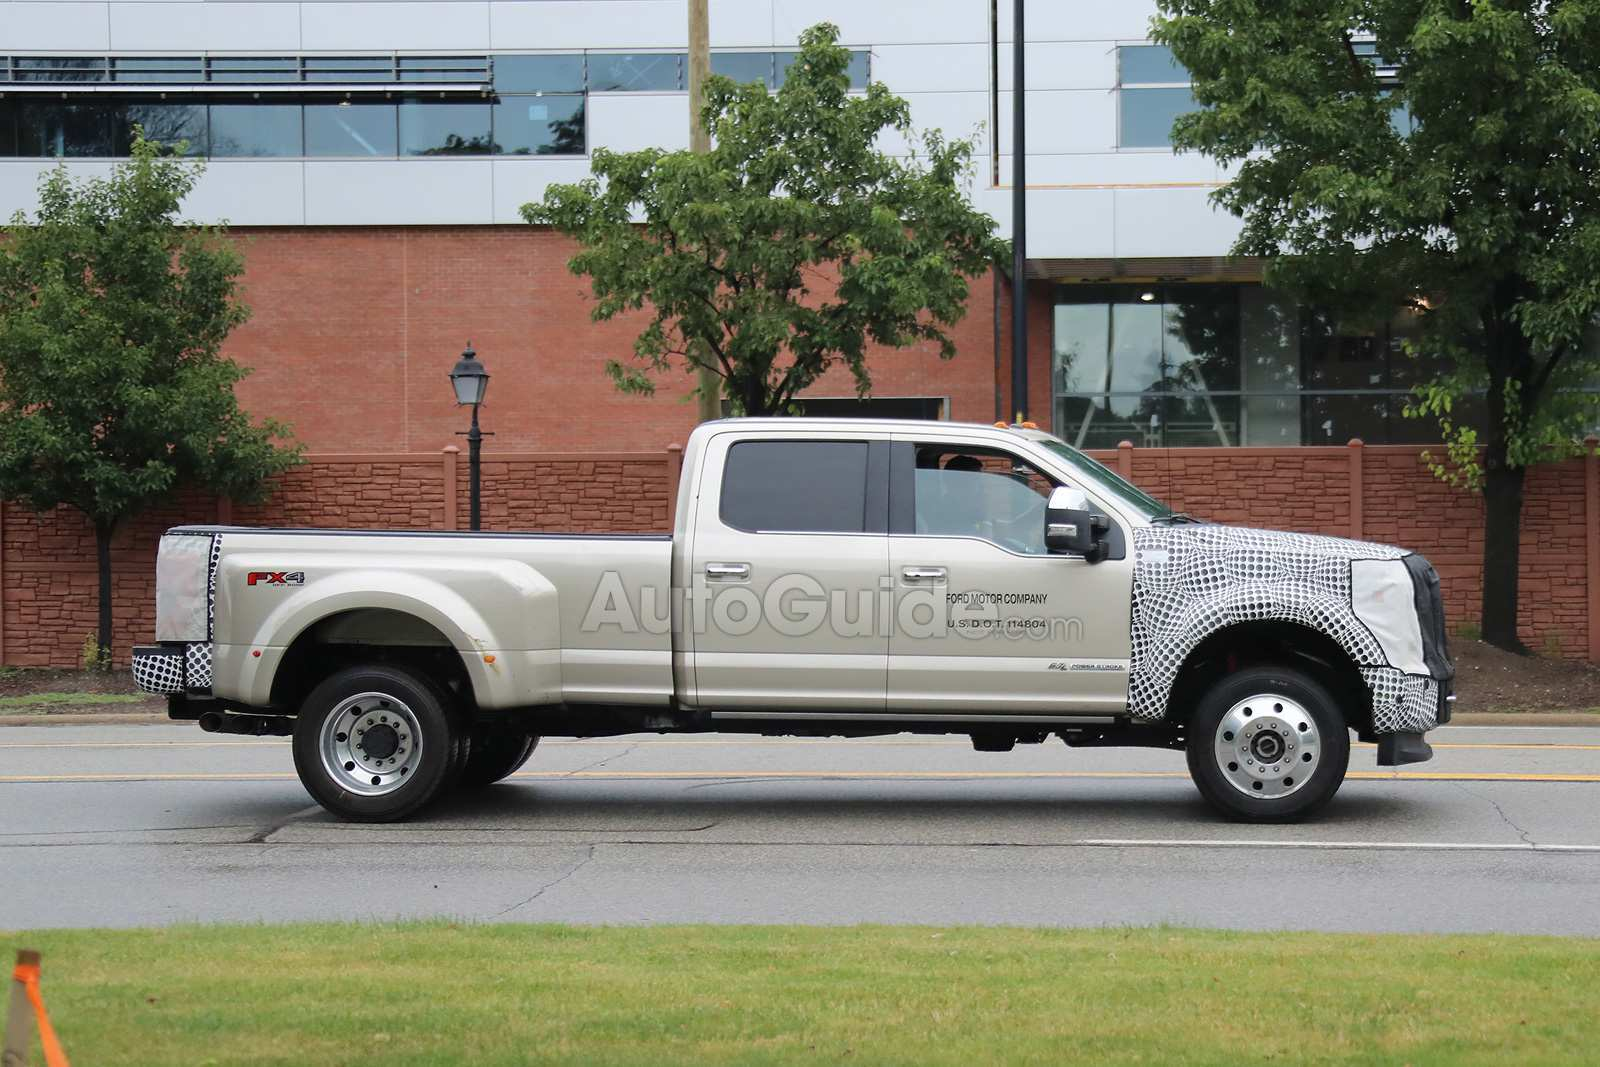 51 All New 2019 Ford Super Duty 7 0 Price Design And Review